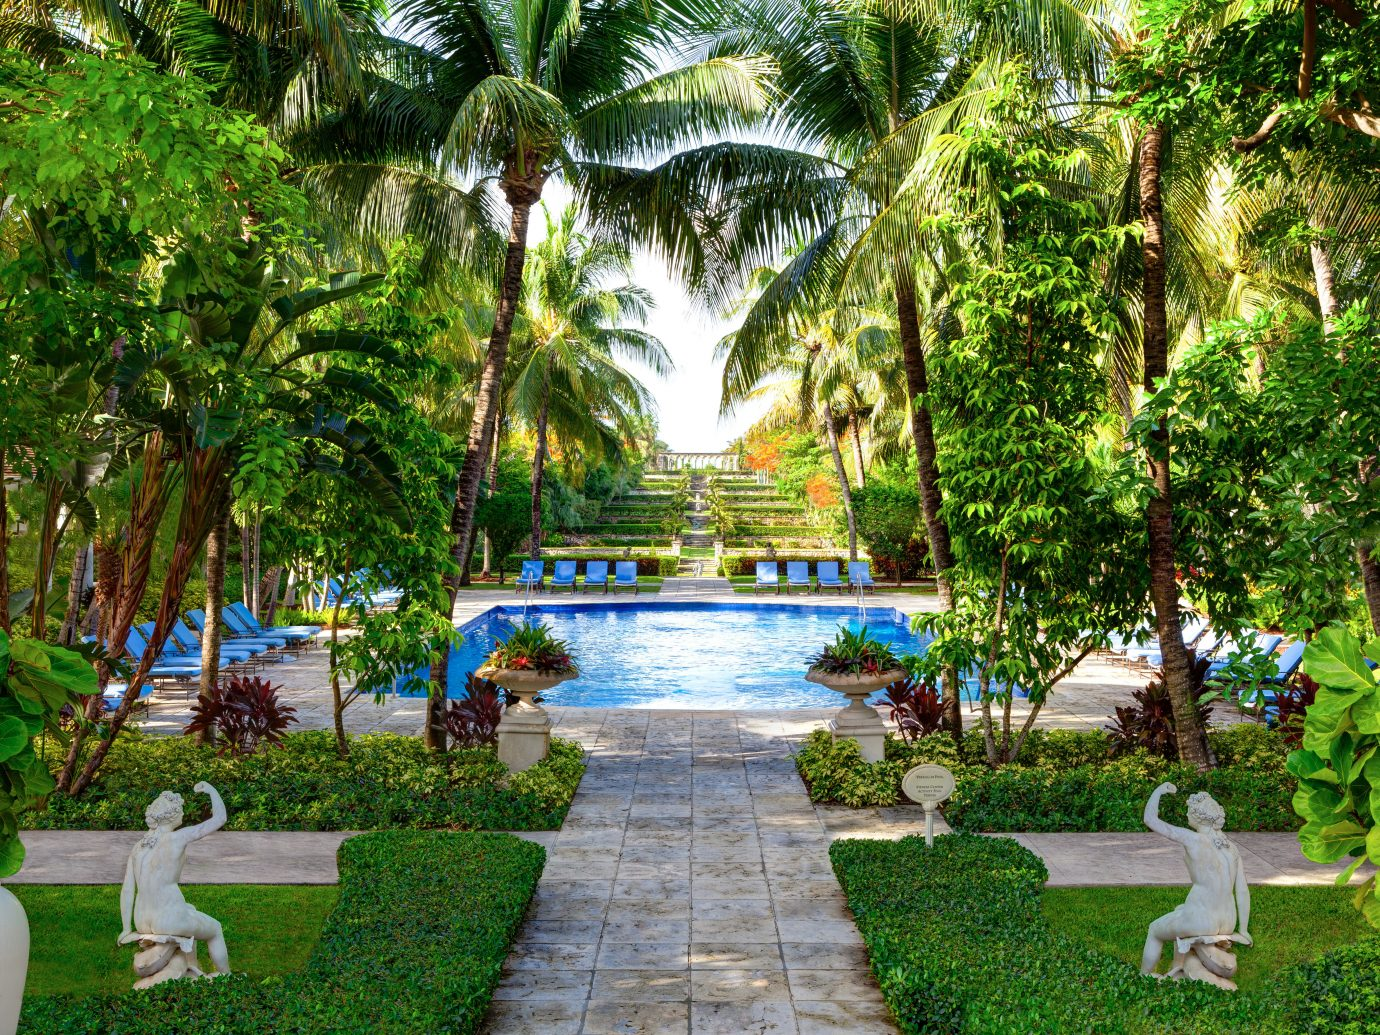 Adult-only Family Grounds Hotels Play Pool Romance Trip Ideas tree outdoor Resort botany estate Garden arecales backyard plant swimming pool Jungle botanical garden tropics flower palm decorated surrounded